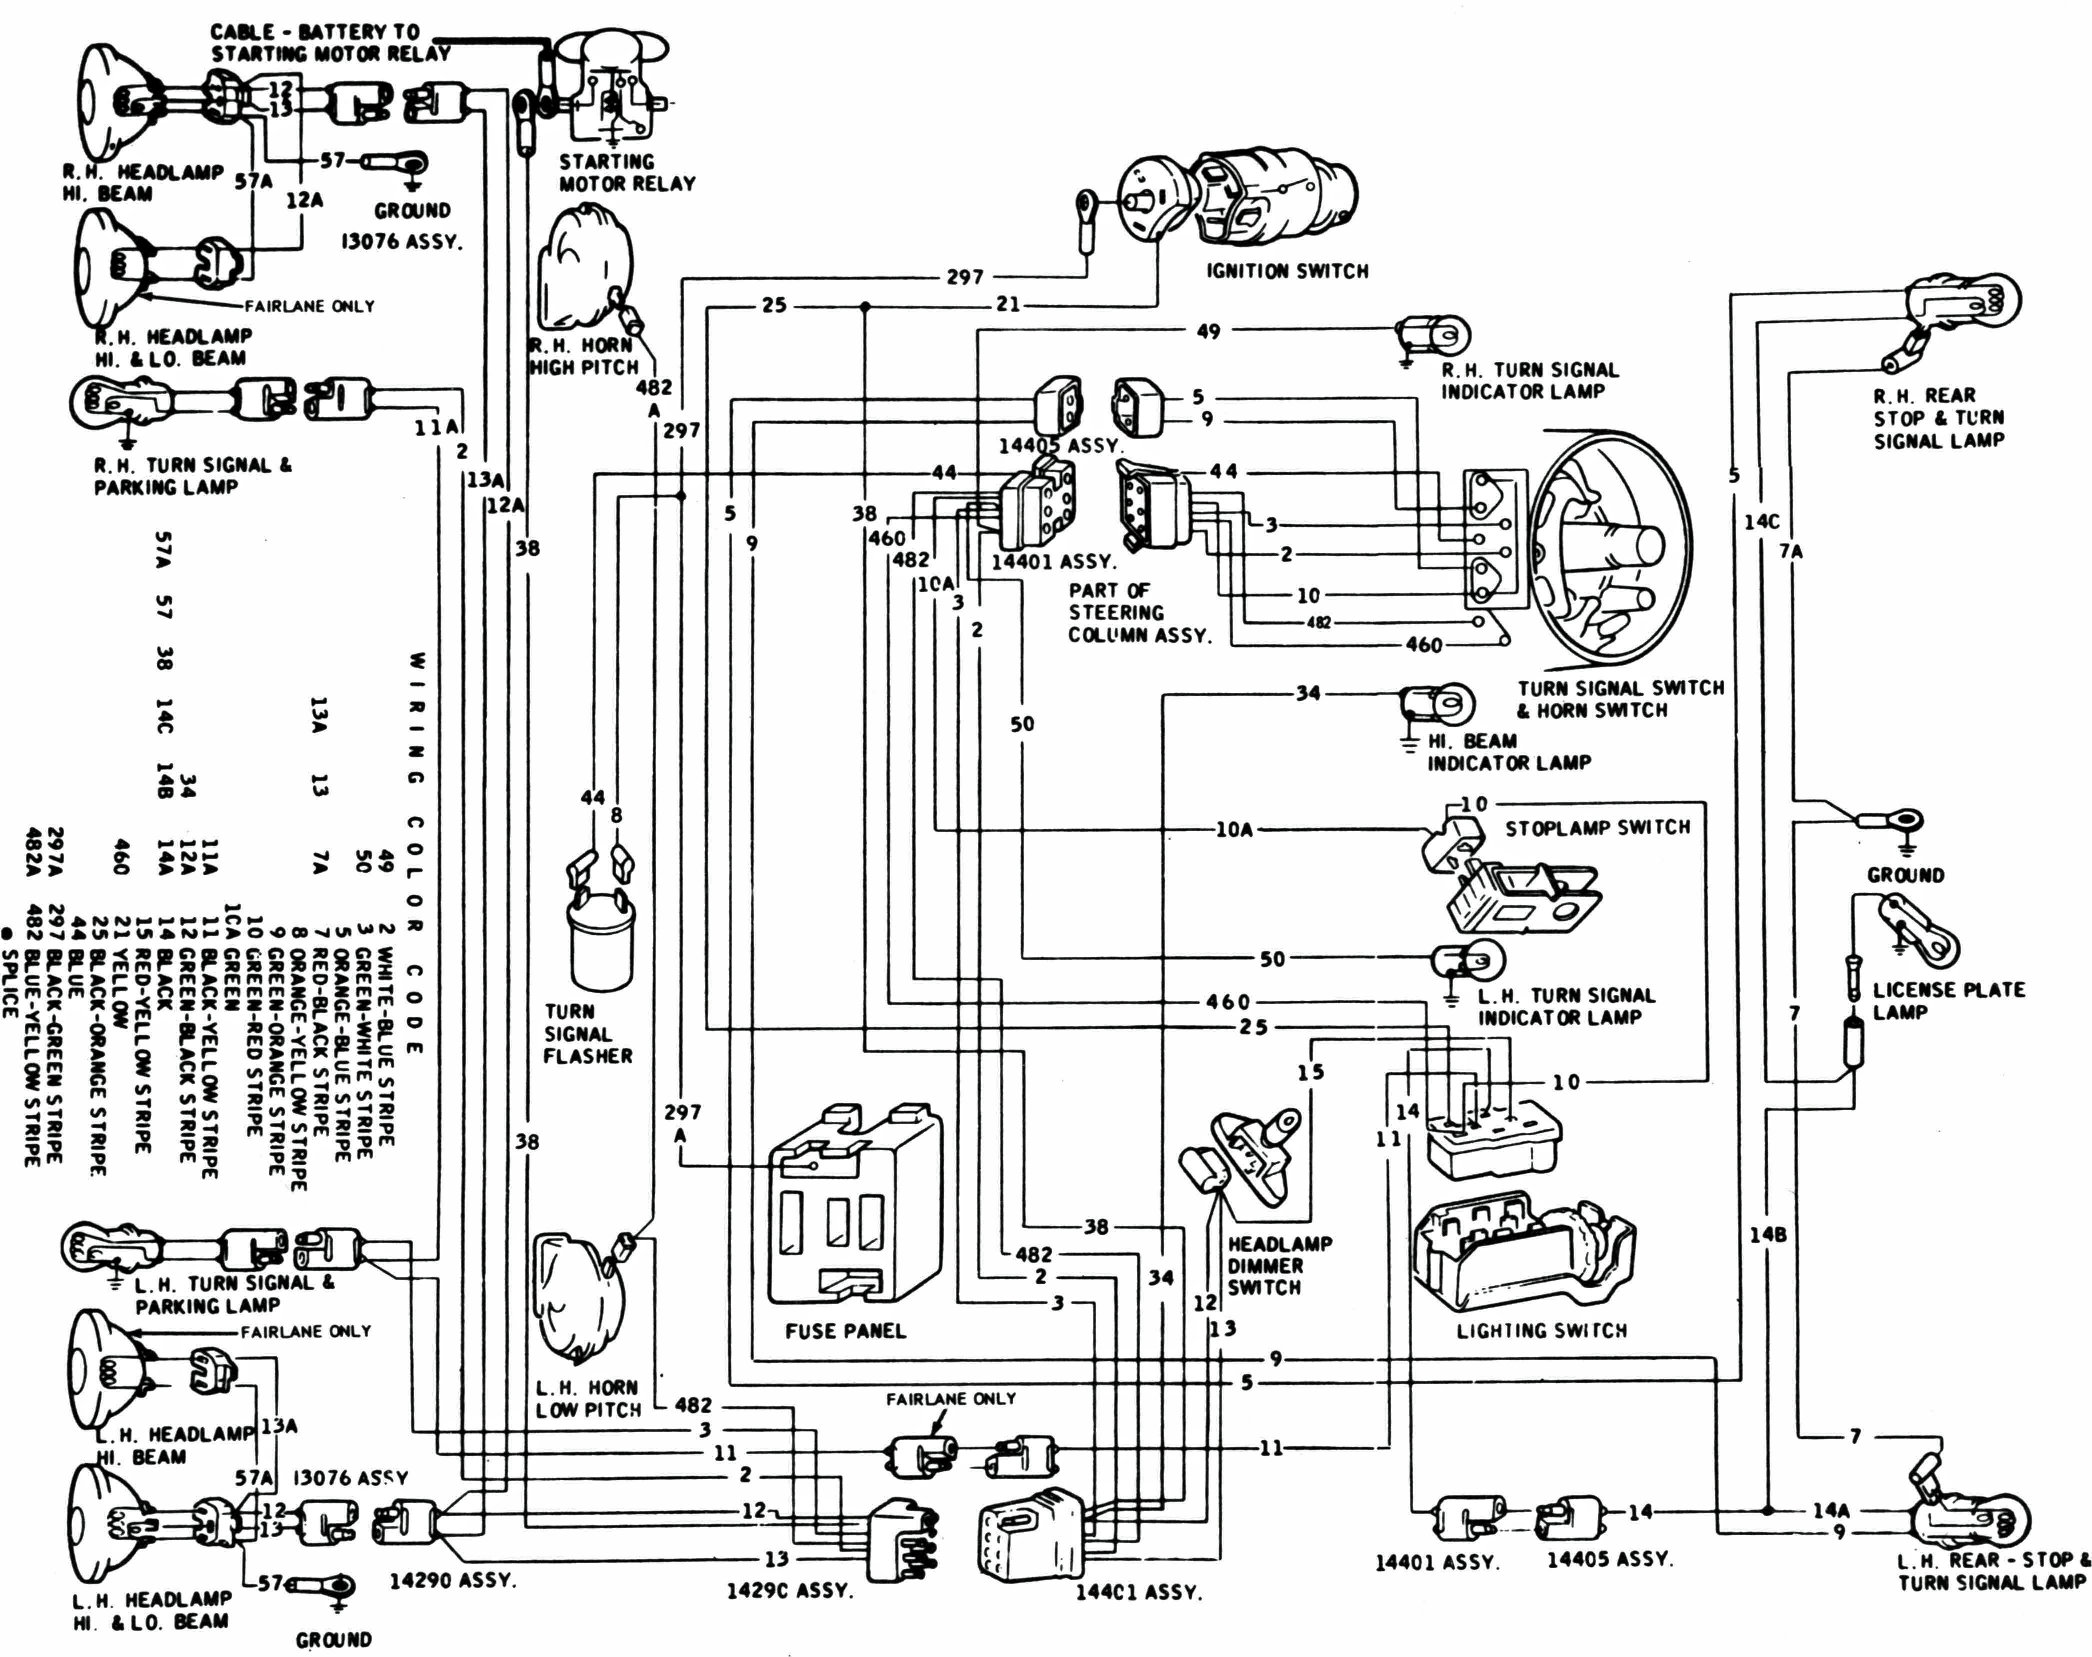 21 Auto Drawing Wiring Diagrams Free ,  https://bacamajalah.com/21-auto-drawing-wiring-diagrams-free/ , #diagrams  #dr… | Electrical diagram, Diagram design, Diagram | Turn Signal Wiring Diagram For 1966 Mustang |  | Pinterest